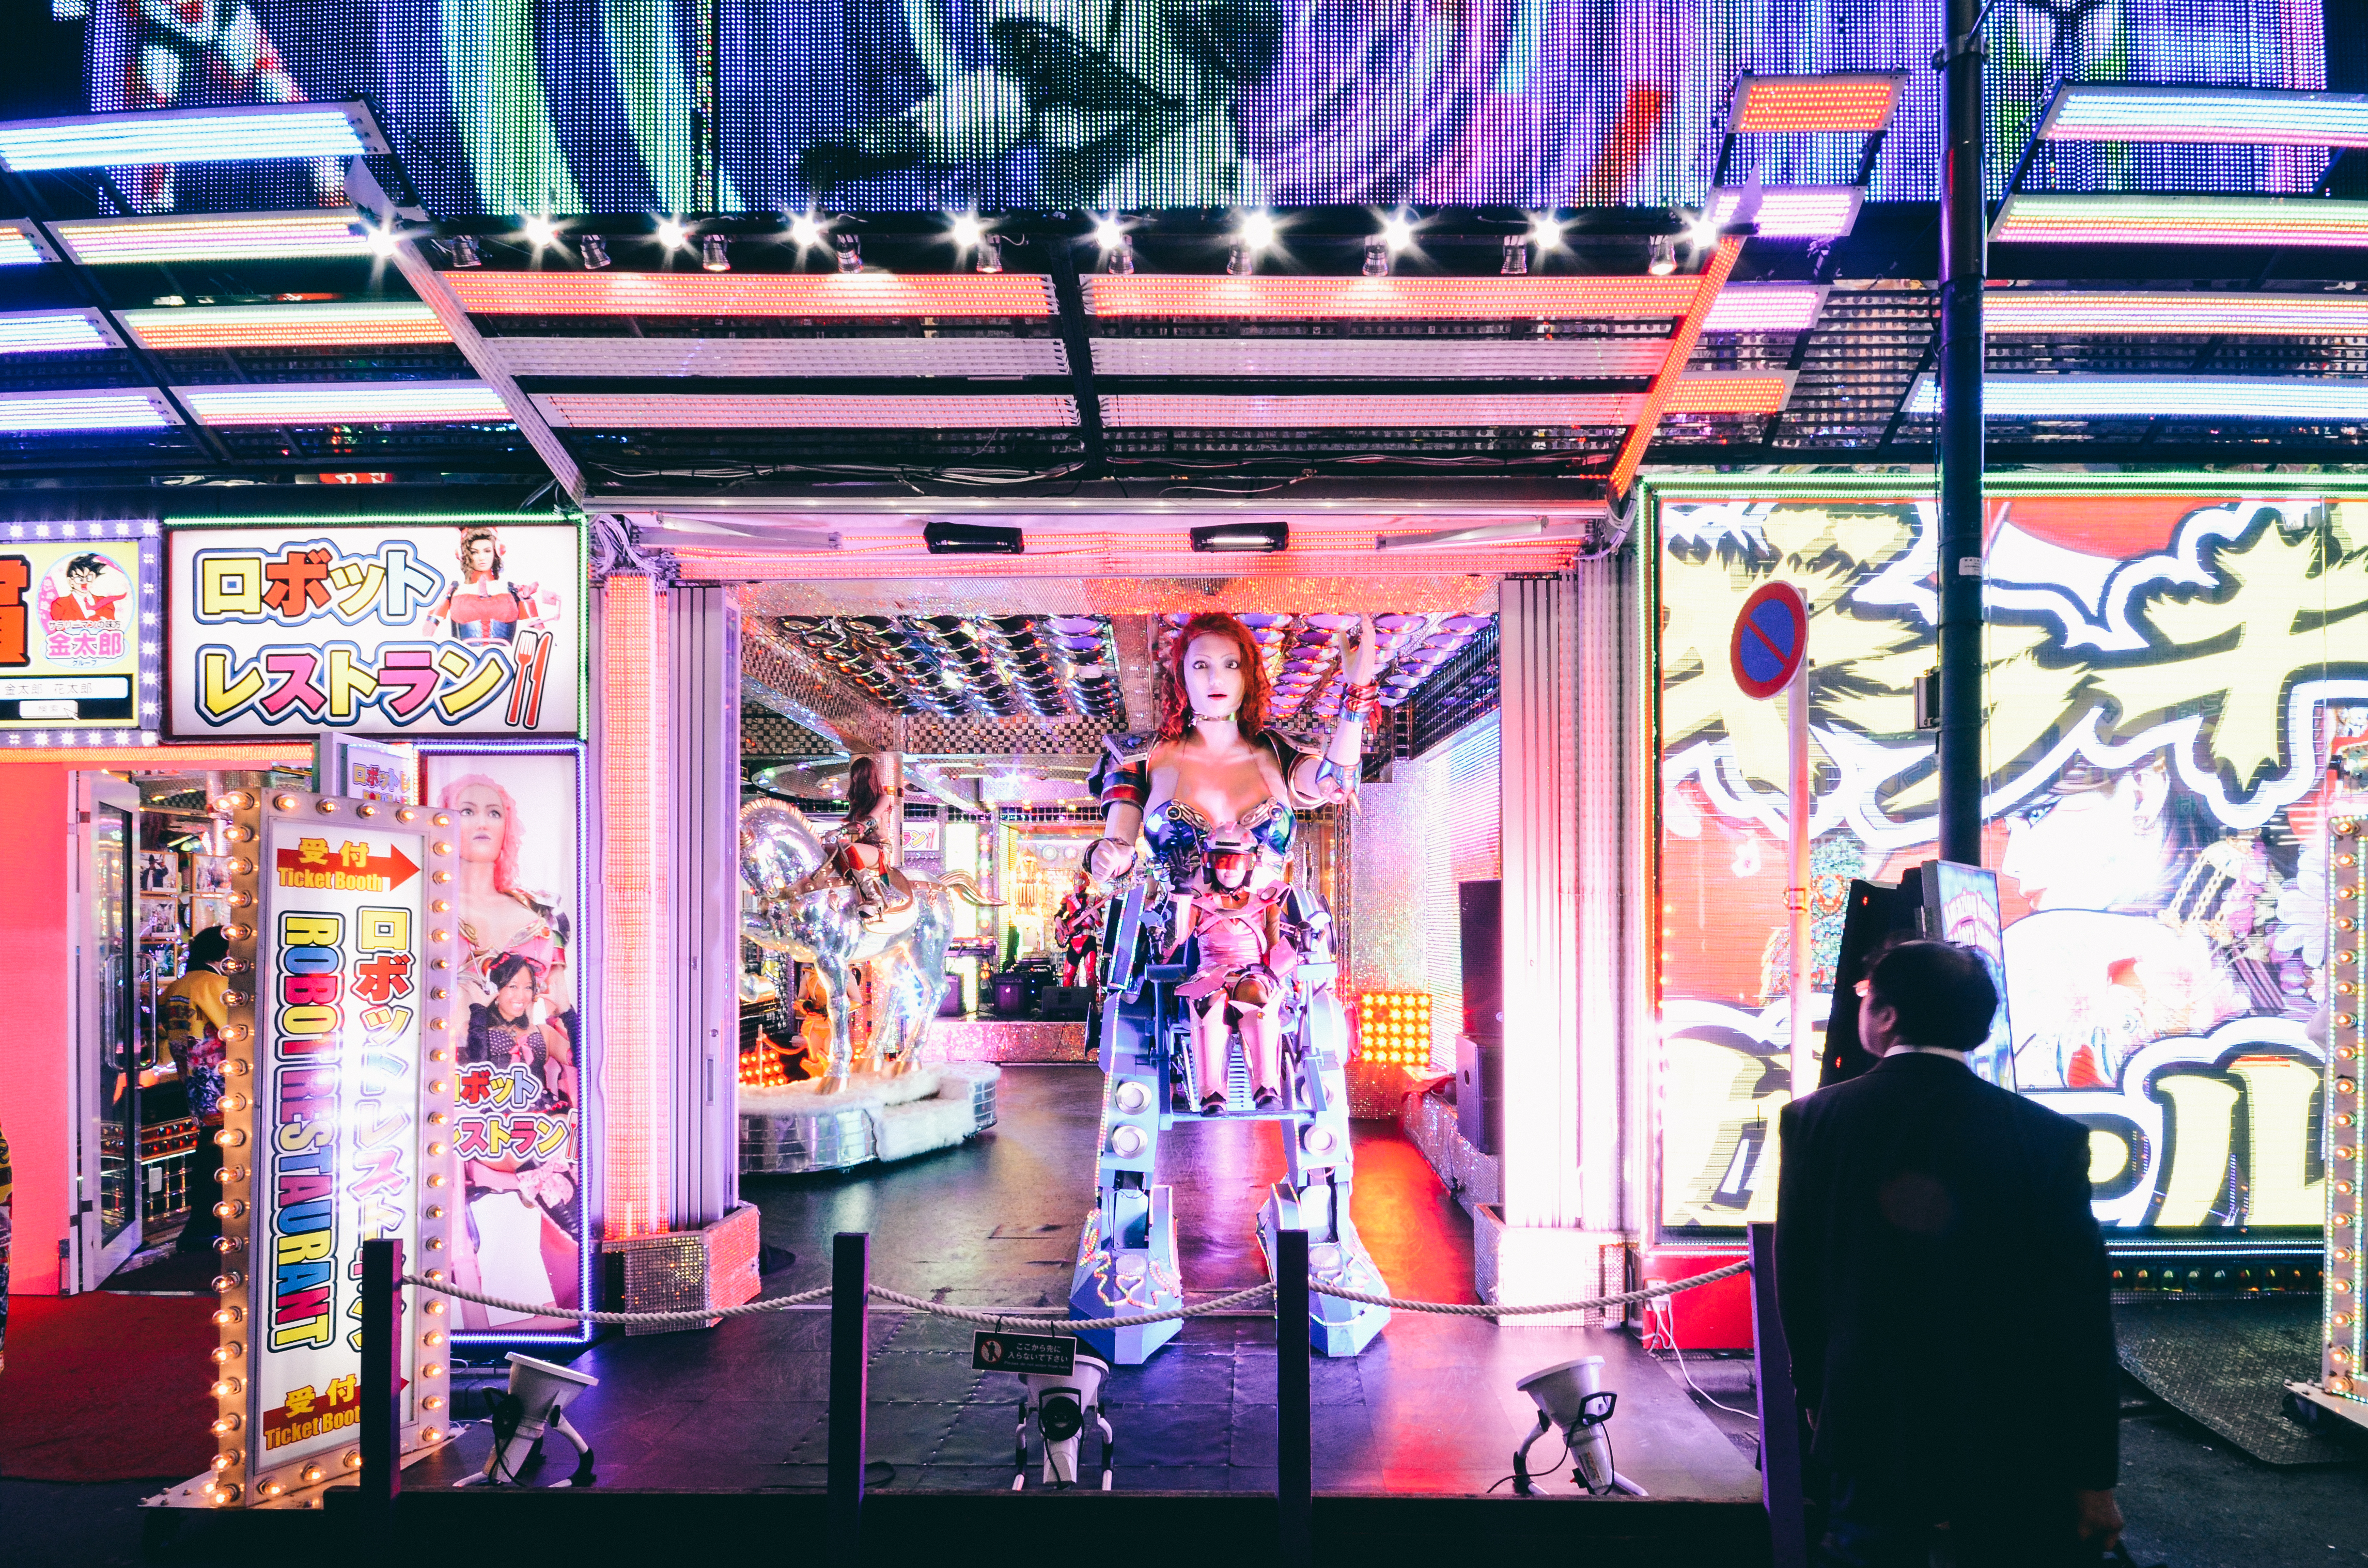 a70beb82d How to Find Cheap Tickets to the Robot Restaurant   Tokyo Cheapo